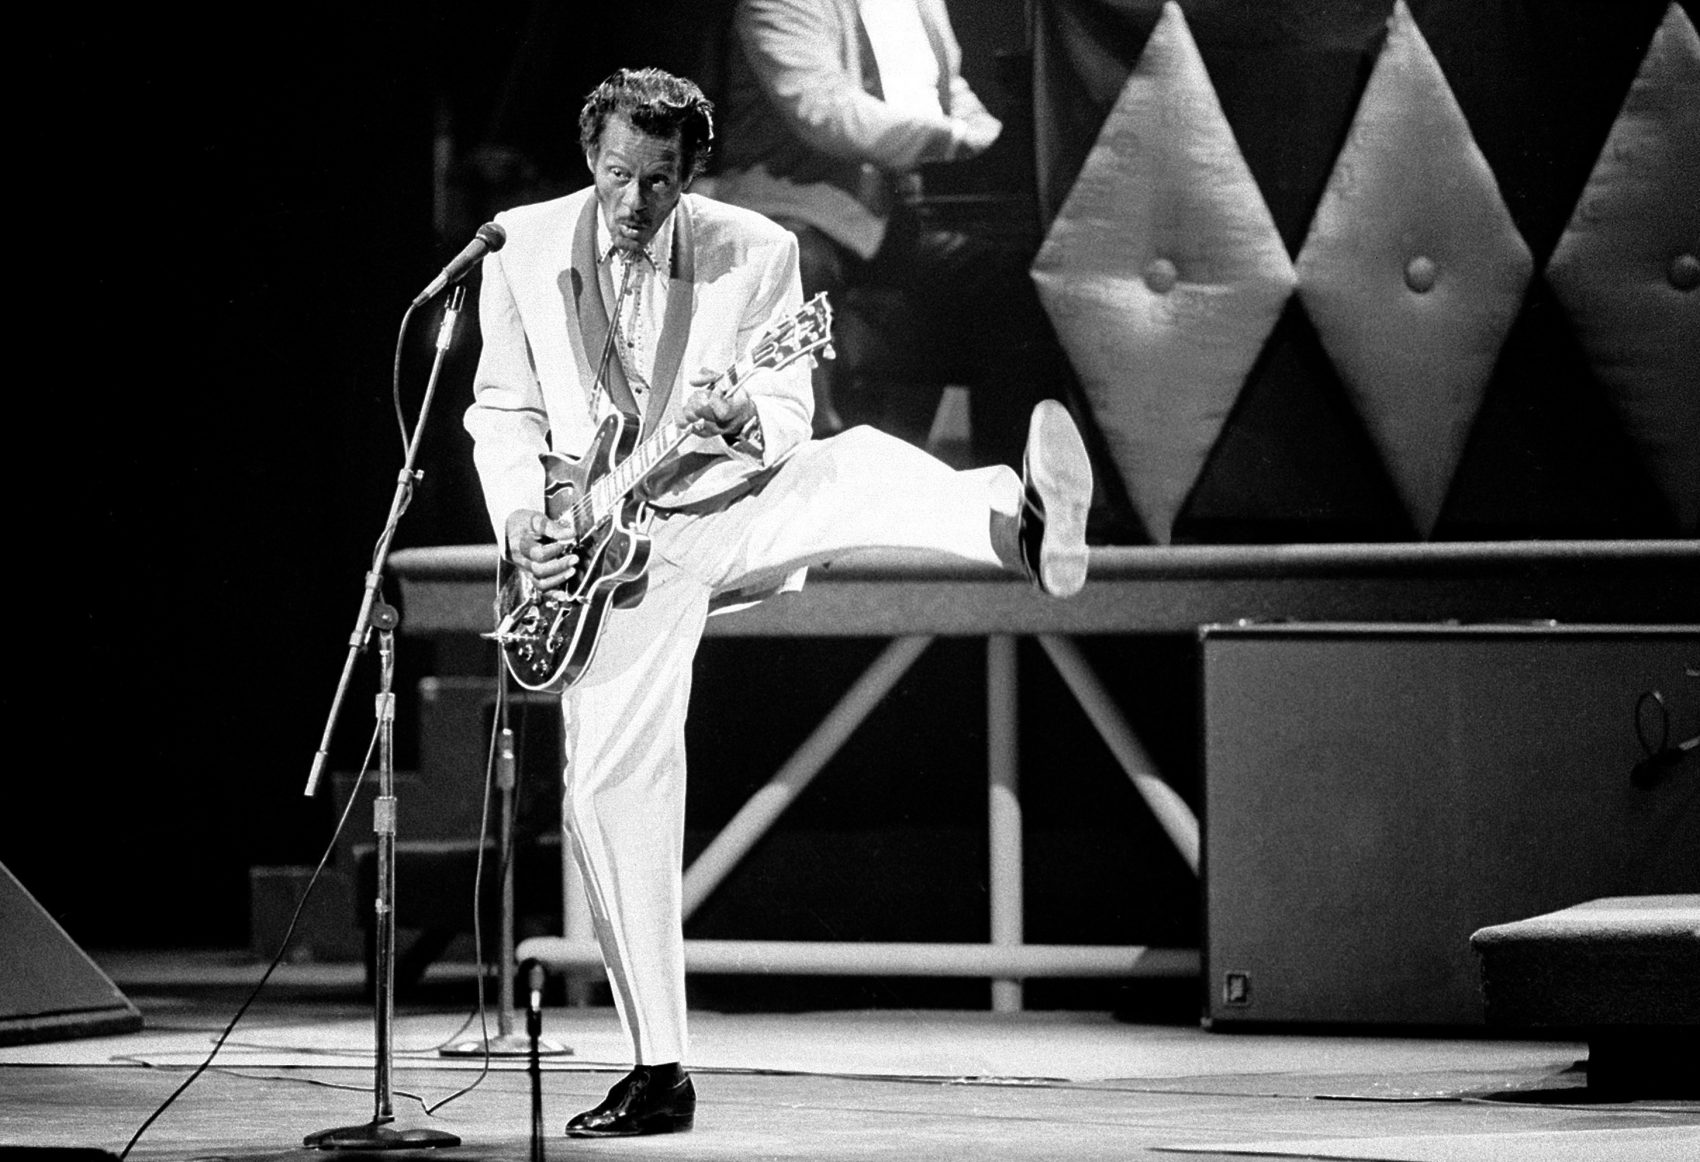 In this Oct. 17, 1986 file photo, Chuck Berry performs during a concert celebration for his 60th birthday at the Fox Theatre in St. Louis, Mo. On Saturday, March 18, 2017, police in Missouri said Berry died at the age of 90. (James A. Finley/AP)